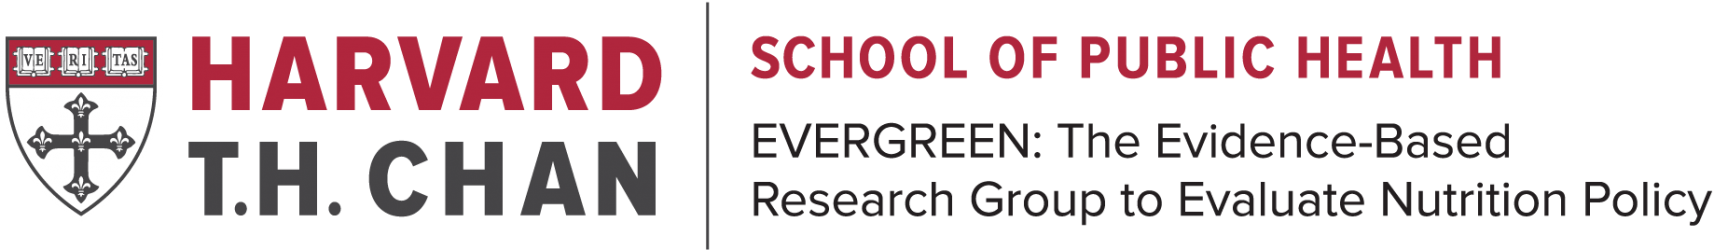 The Evidence-Based Research Group to Evaluate Nutrition Policy